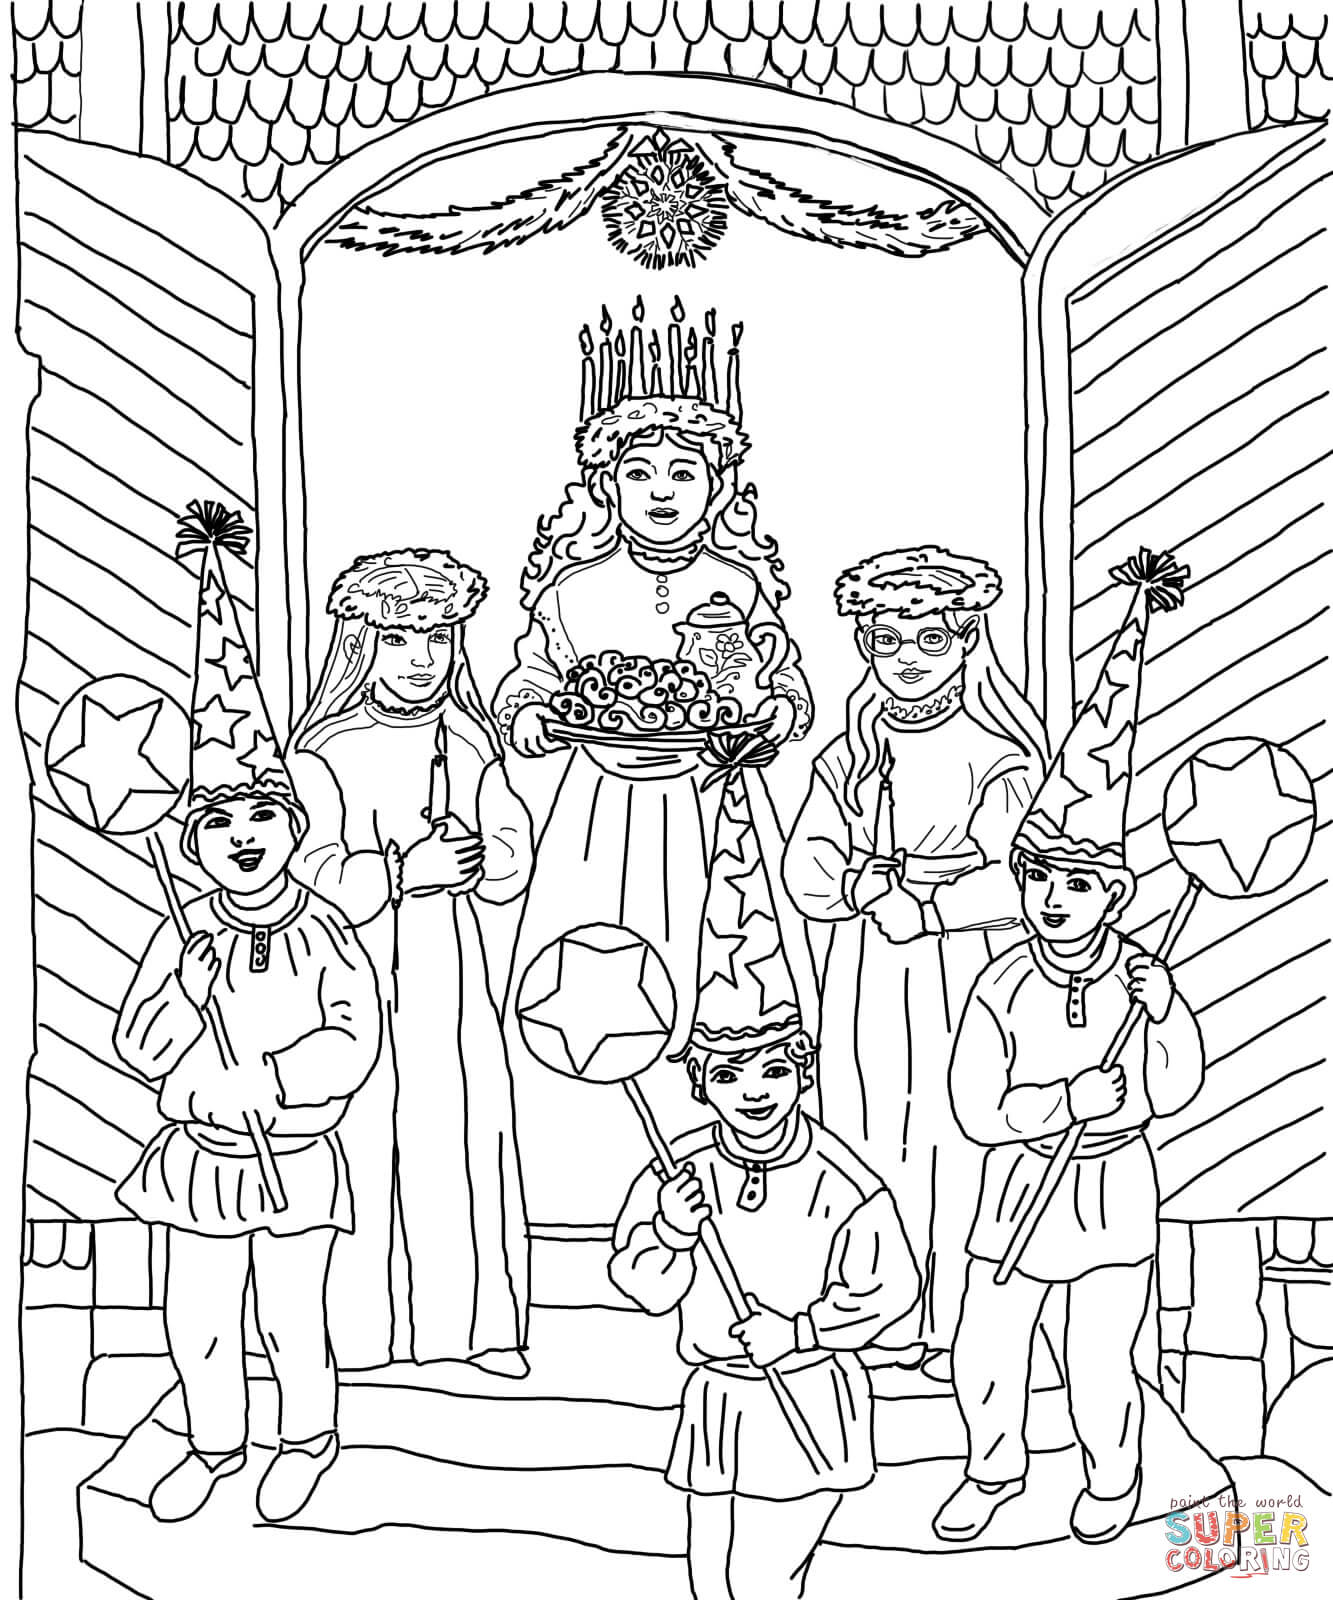 Saint Lucia Day Celebration Coloring Page